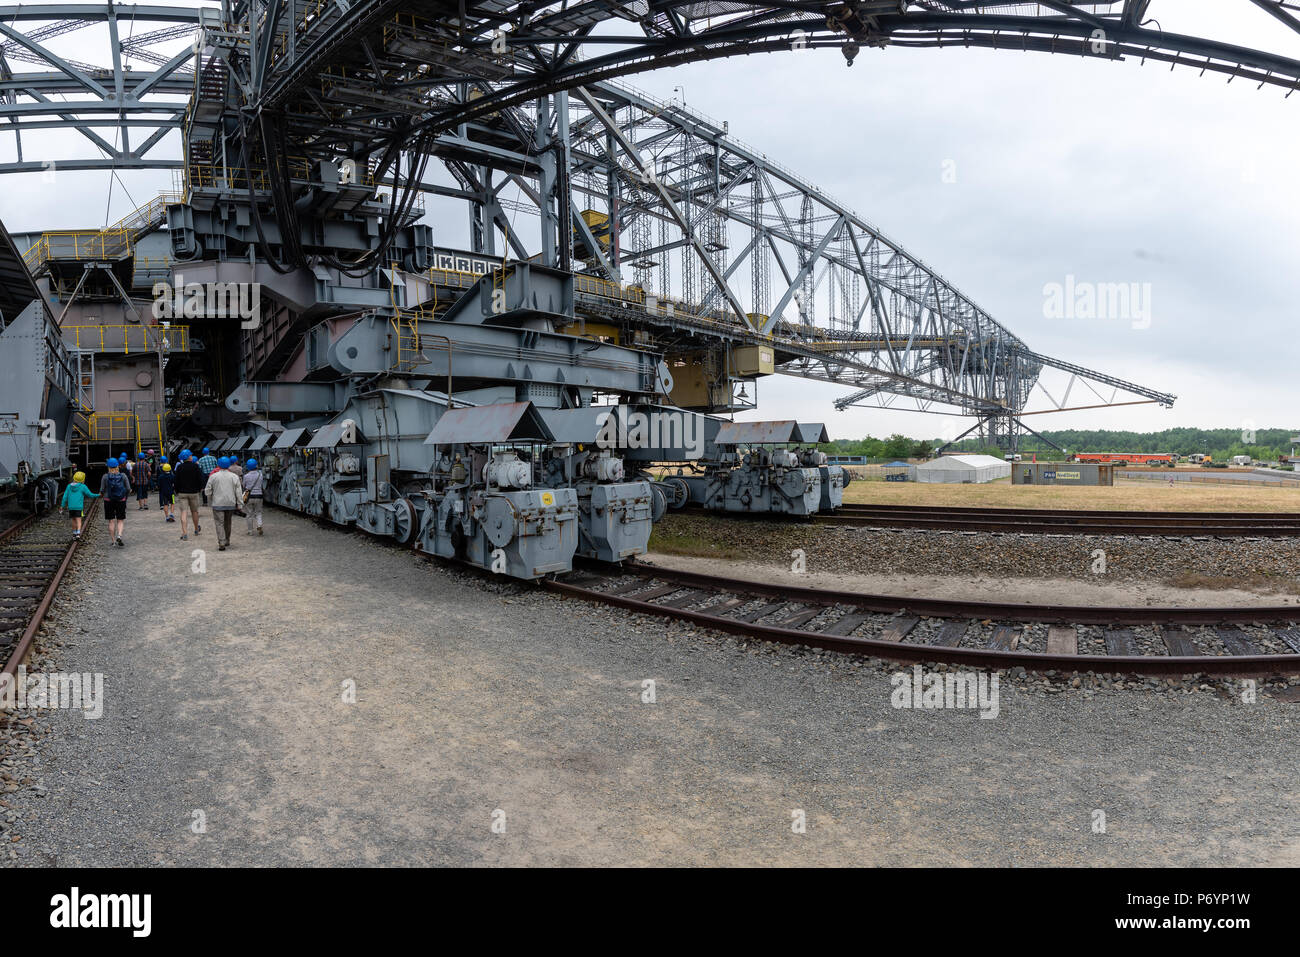 F60 is the series designation of five overburden conveyor bridges used in brown coal (lignite) opencast mining in the Lusatian coalfields in Germany.  Stock Photo